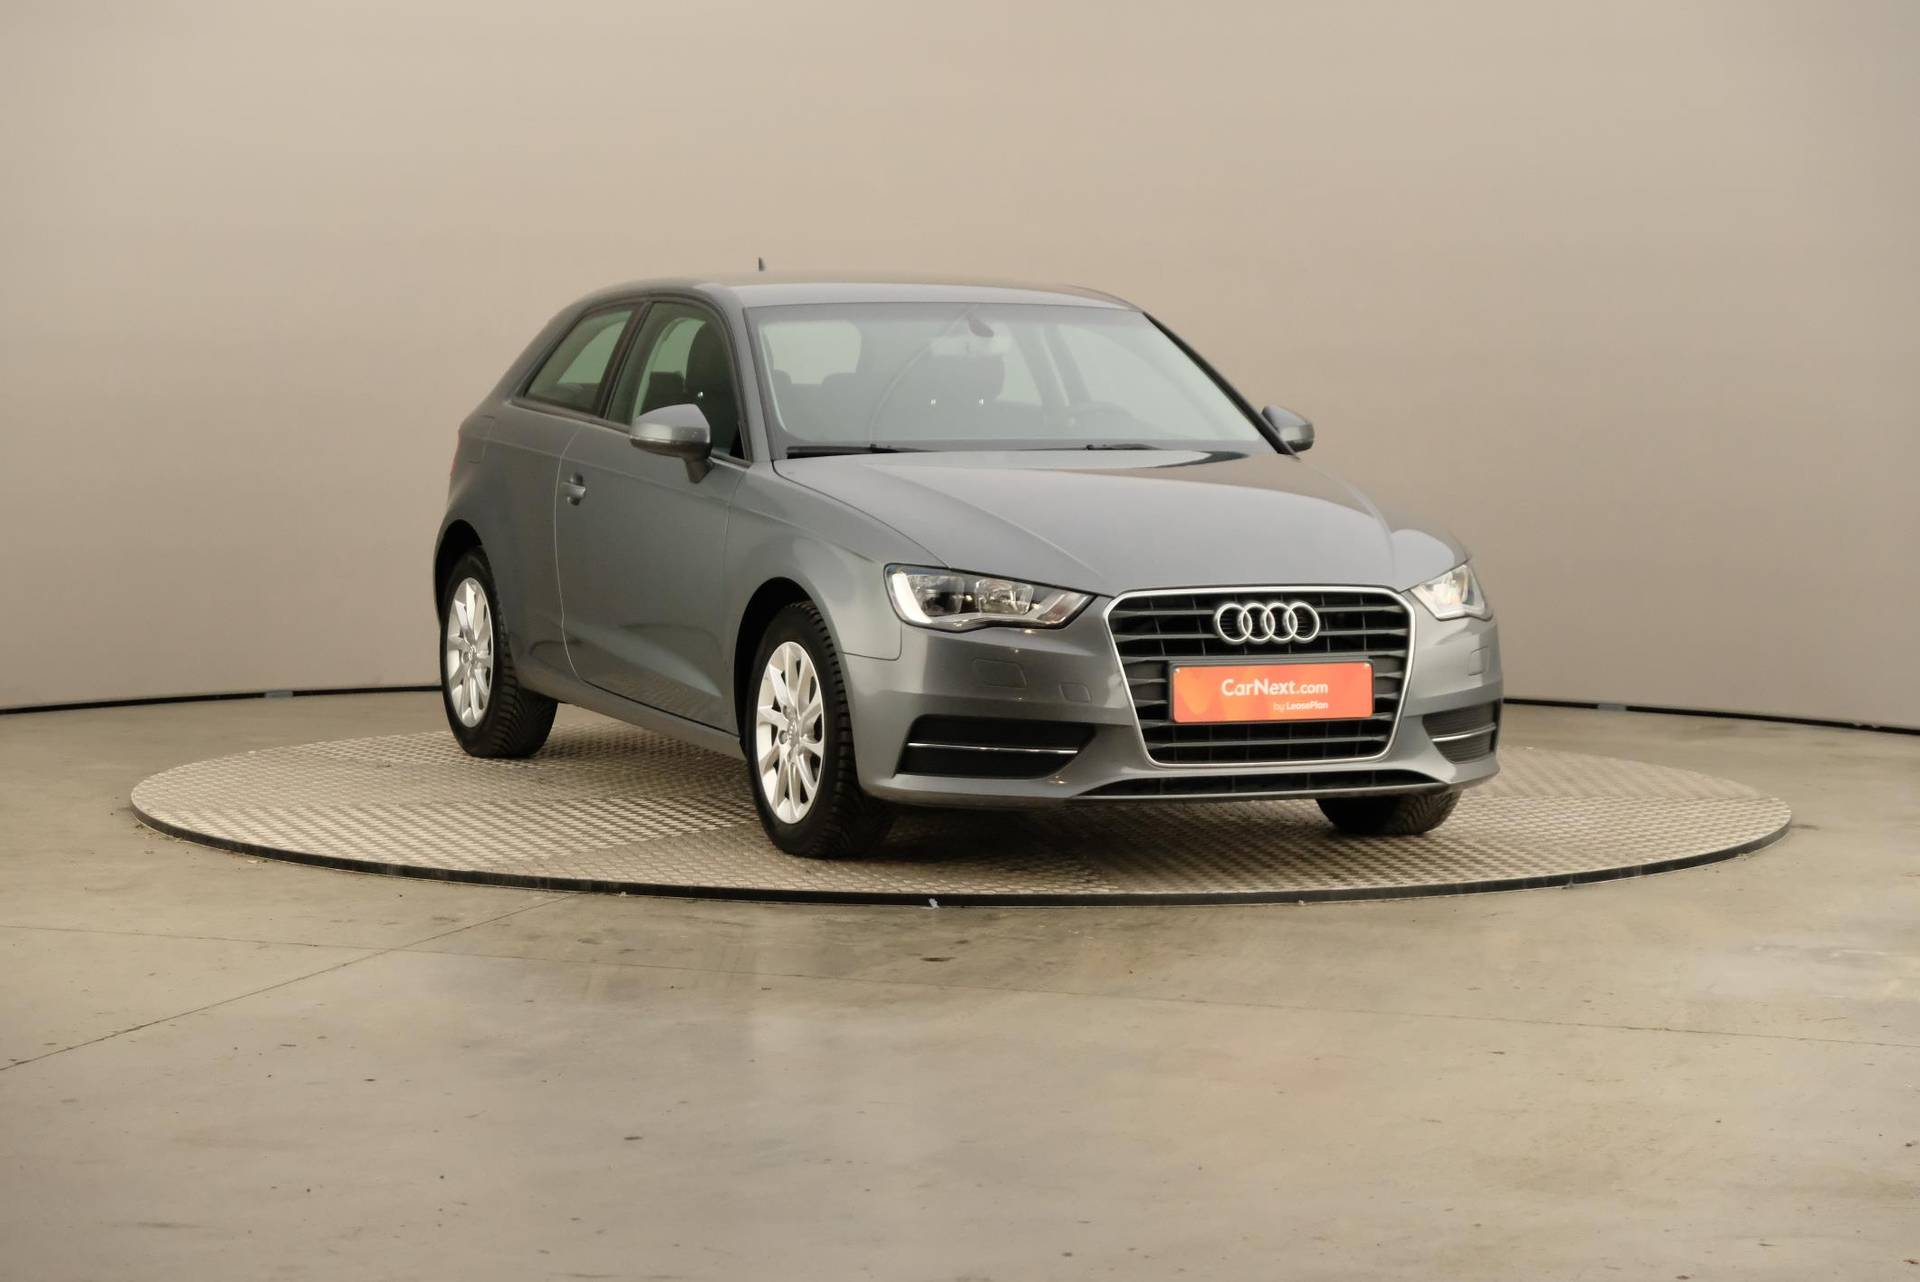 Audi A3 1.6 TDi ULTRA Attraction GPS PDC BLUETOOTH, 360-image28